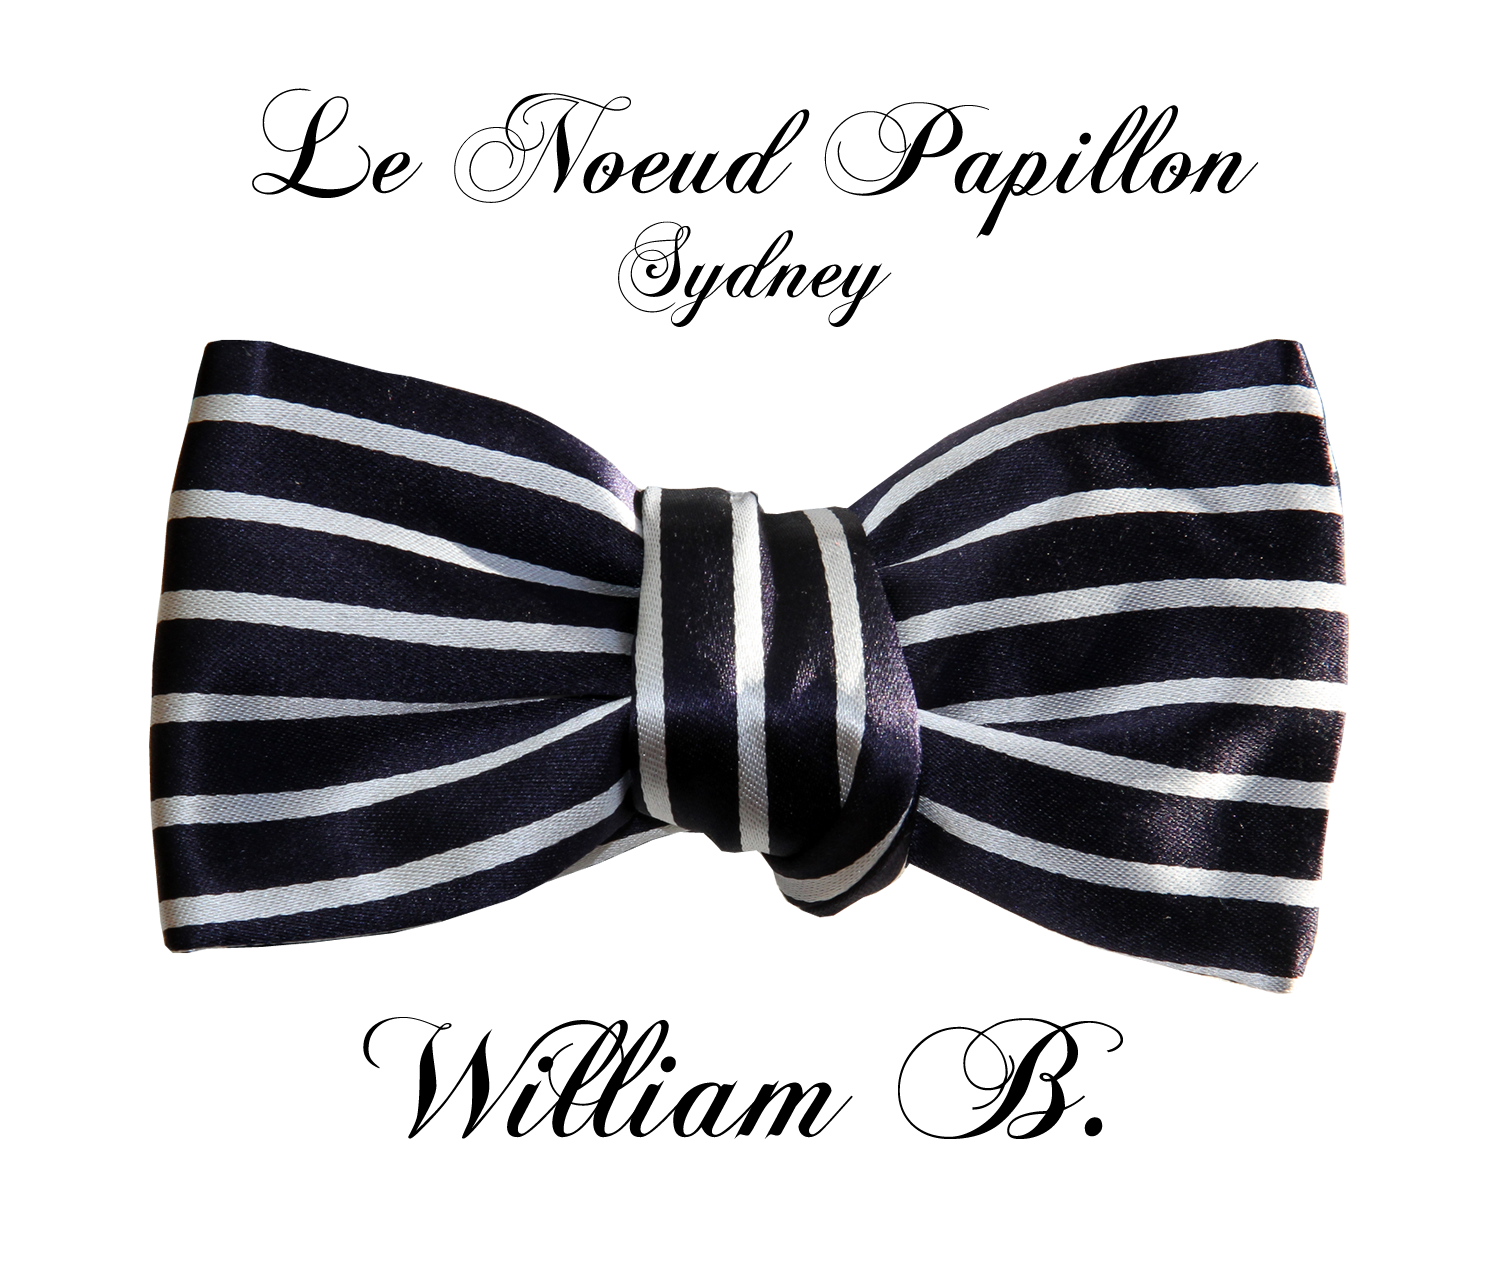 ba71e445b40b7 Introducing The New William B. Bow Tie From Le Noeud Papillon Sydney